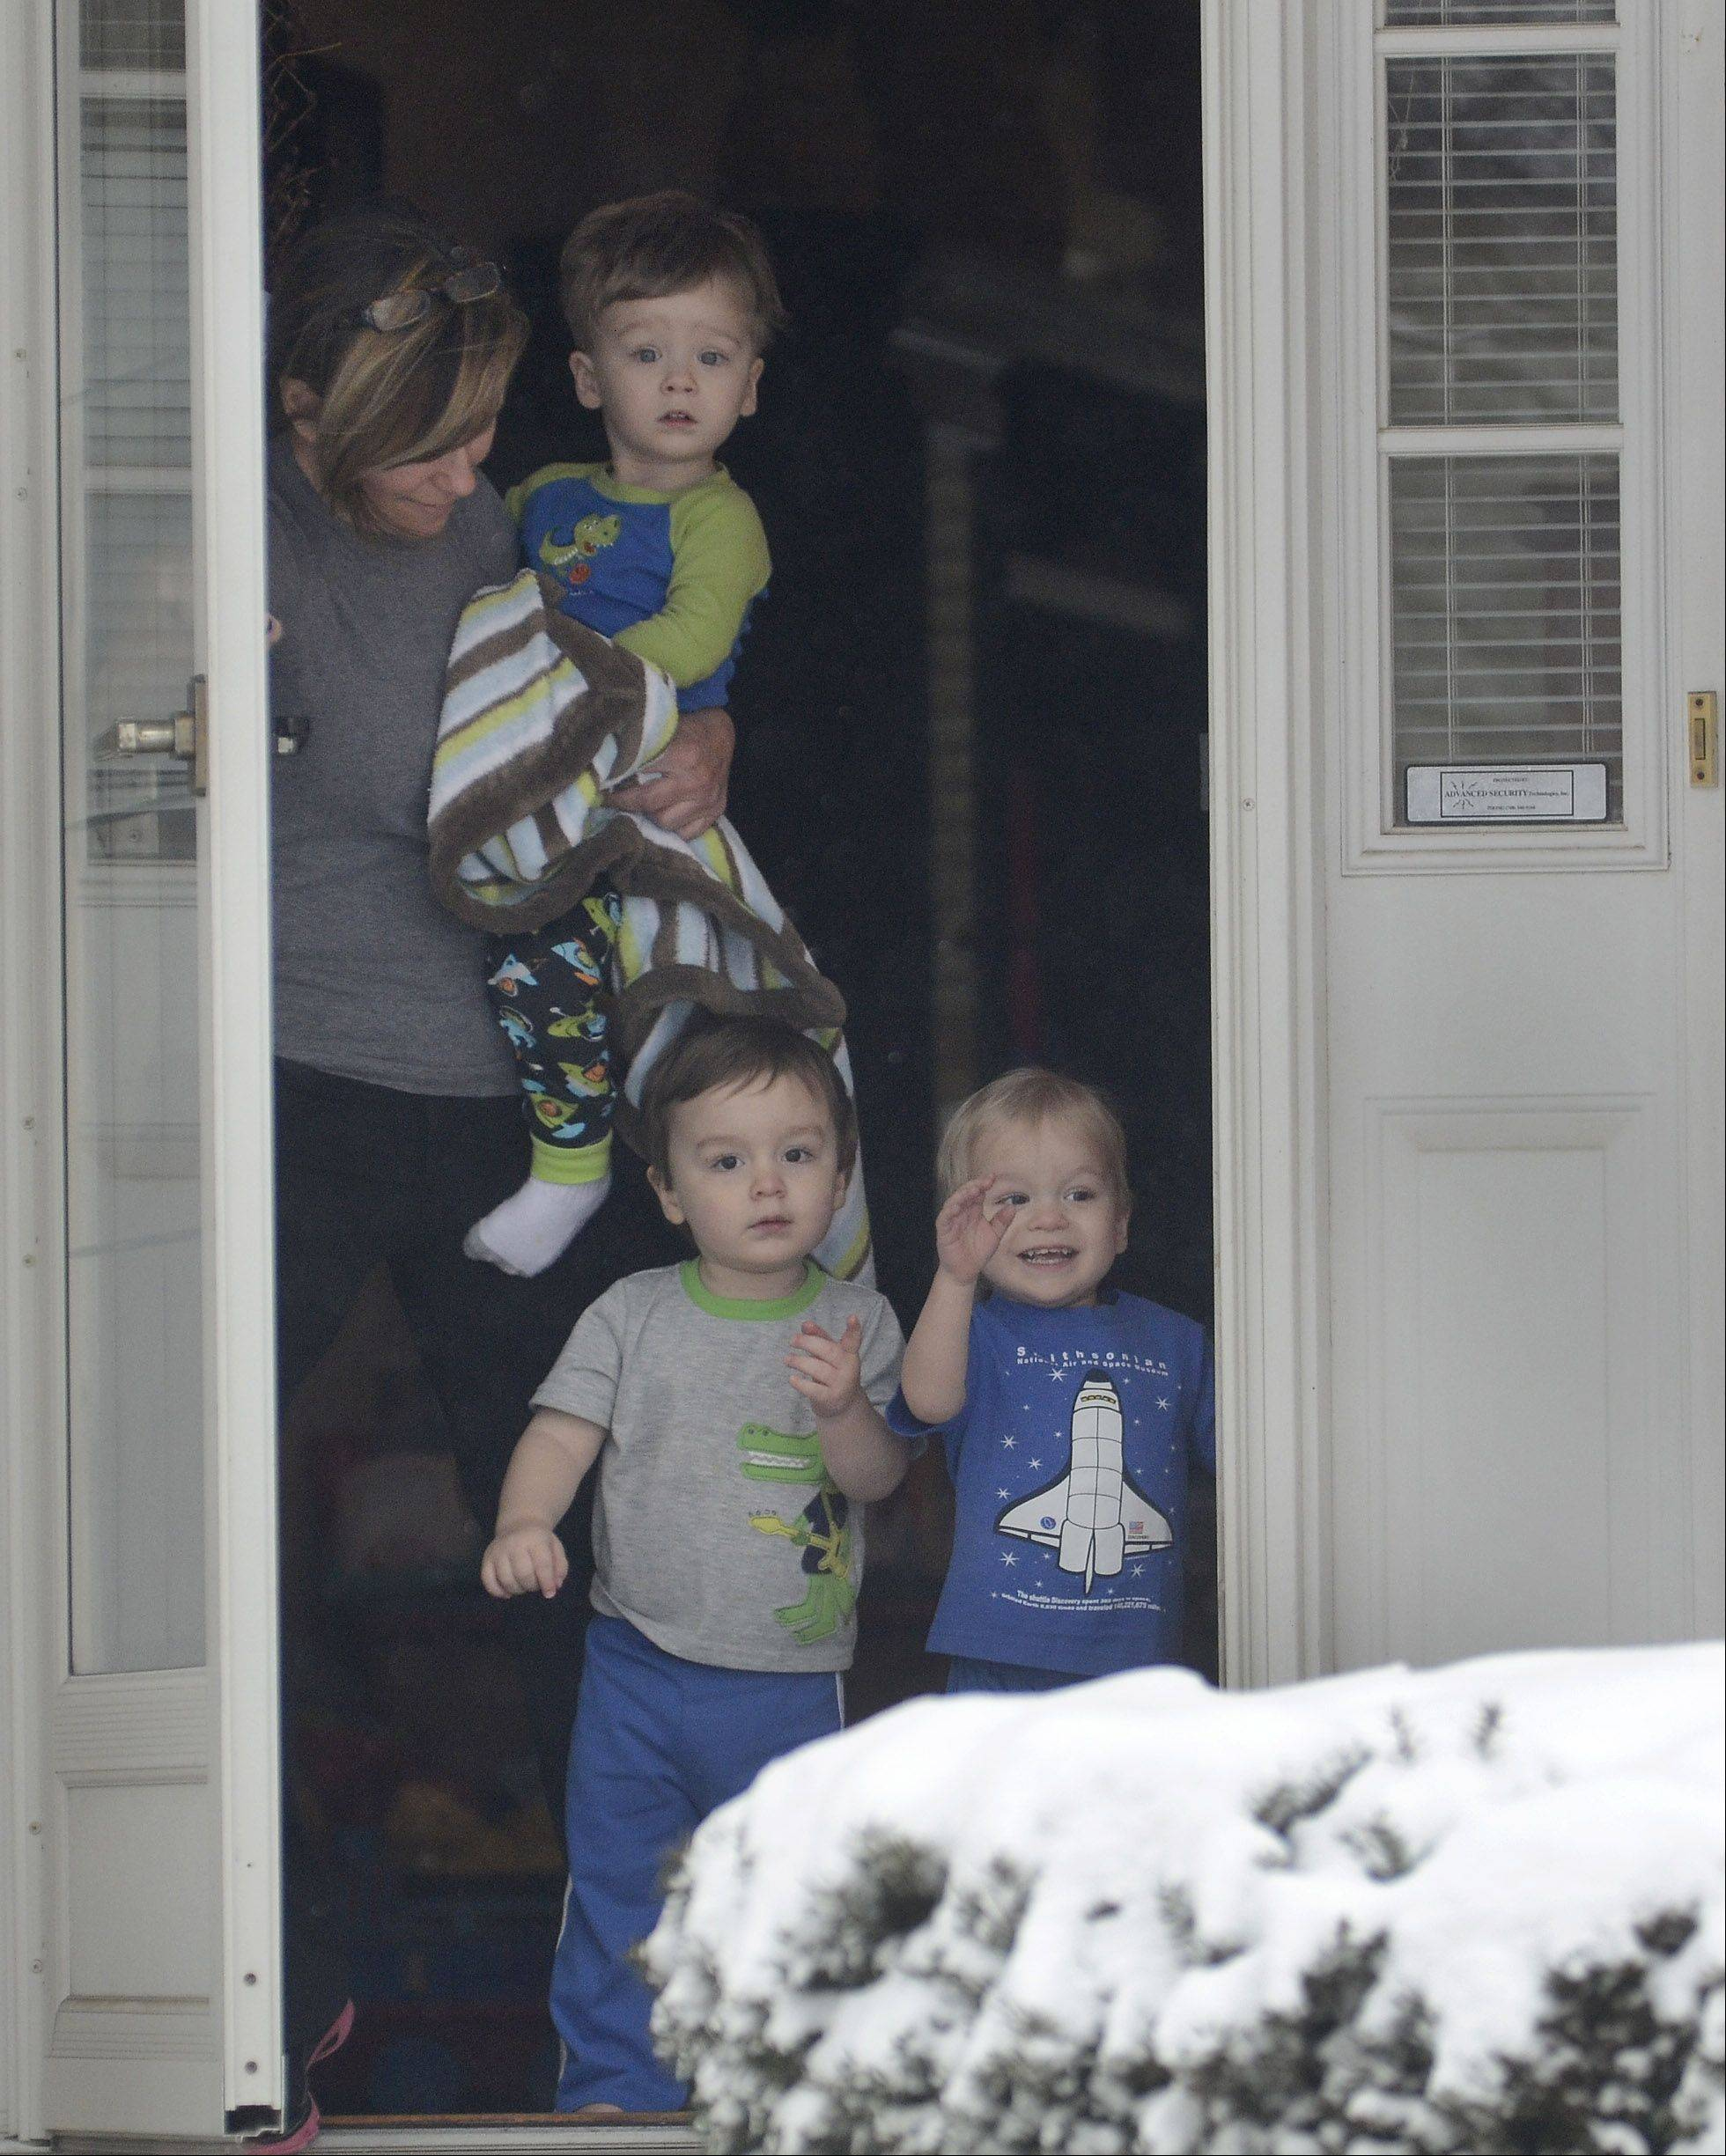 Triplets Nick, Cole and Jake Wojtalewicz wave to their neighbor Rich Kuebler, as he plows a driveway, while Rich's wife Grace Kuebler babysits for the threesome in Lake Zurich Friday morning.